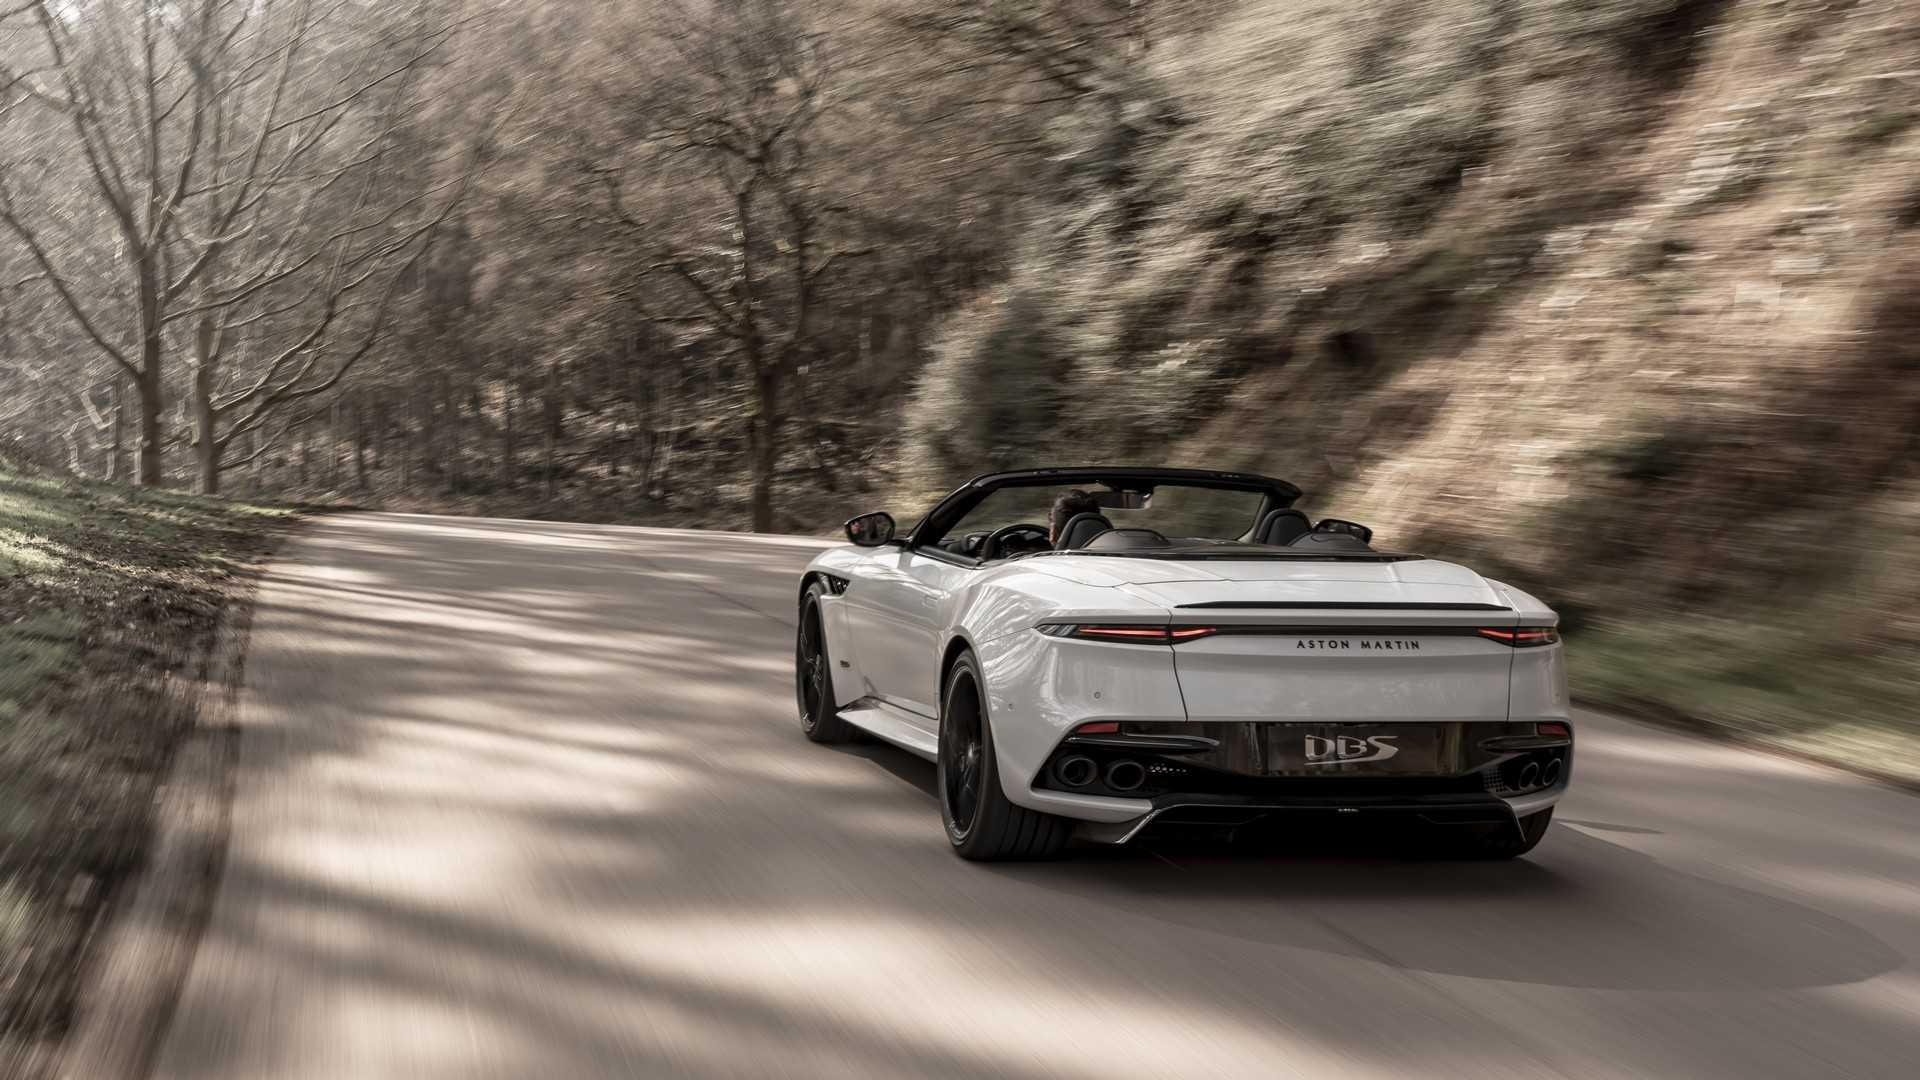 2019 Aston Martin DBS Superleggera Volante Rear Wallpapers (5)